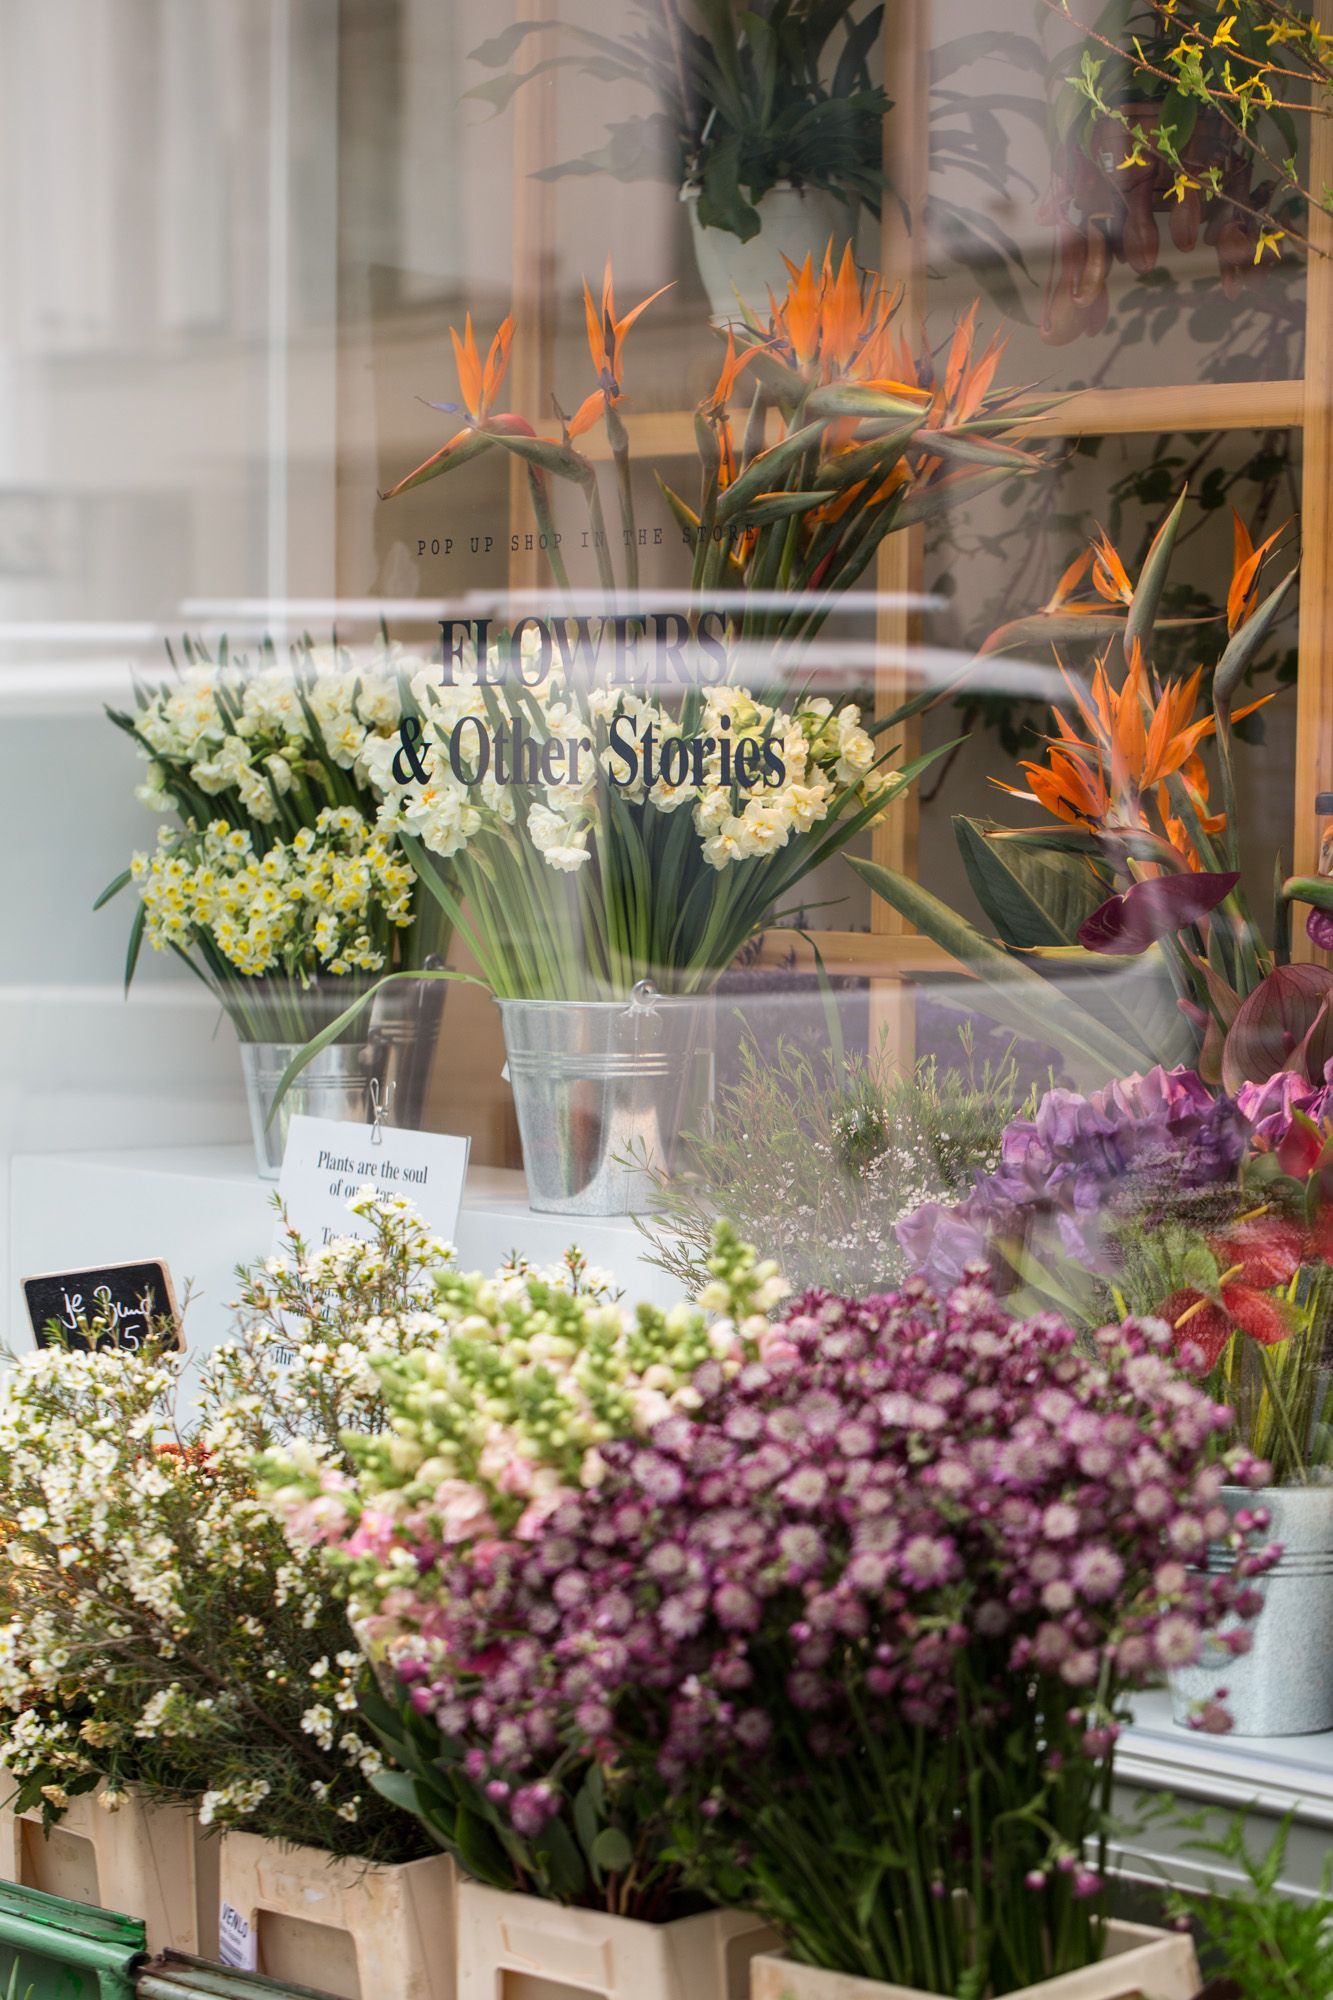 Other Stories Flower Pop Up Shop In Mitte Berlin Flower Store Flower Arrangements Flower Shop